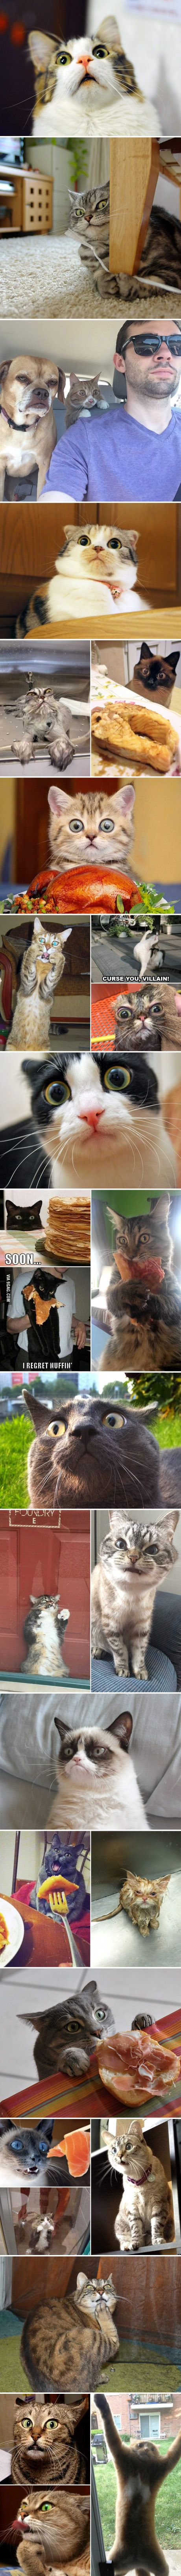 Cats are probably the most dramatic animals in the world……